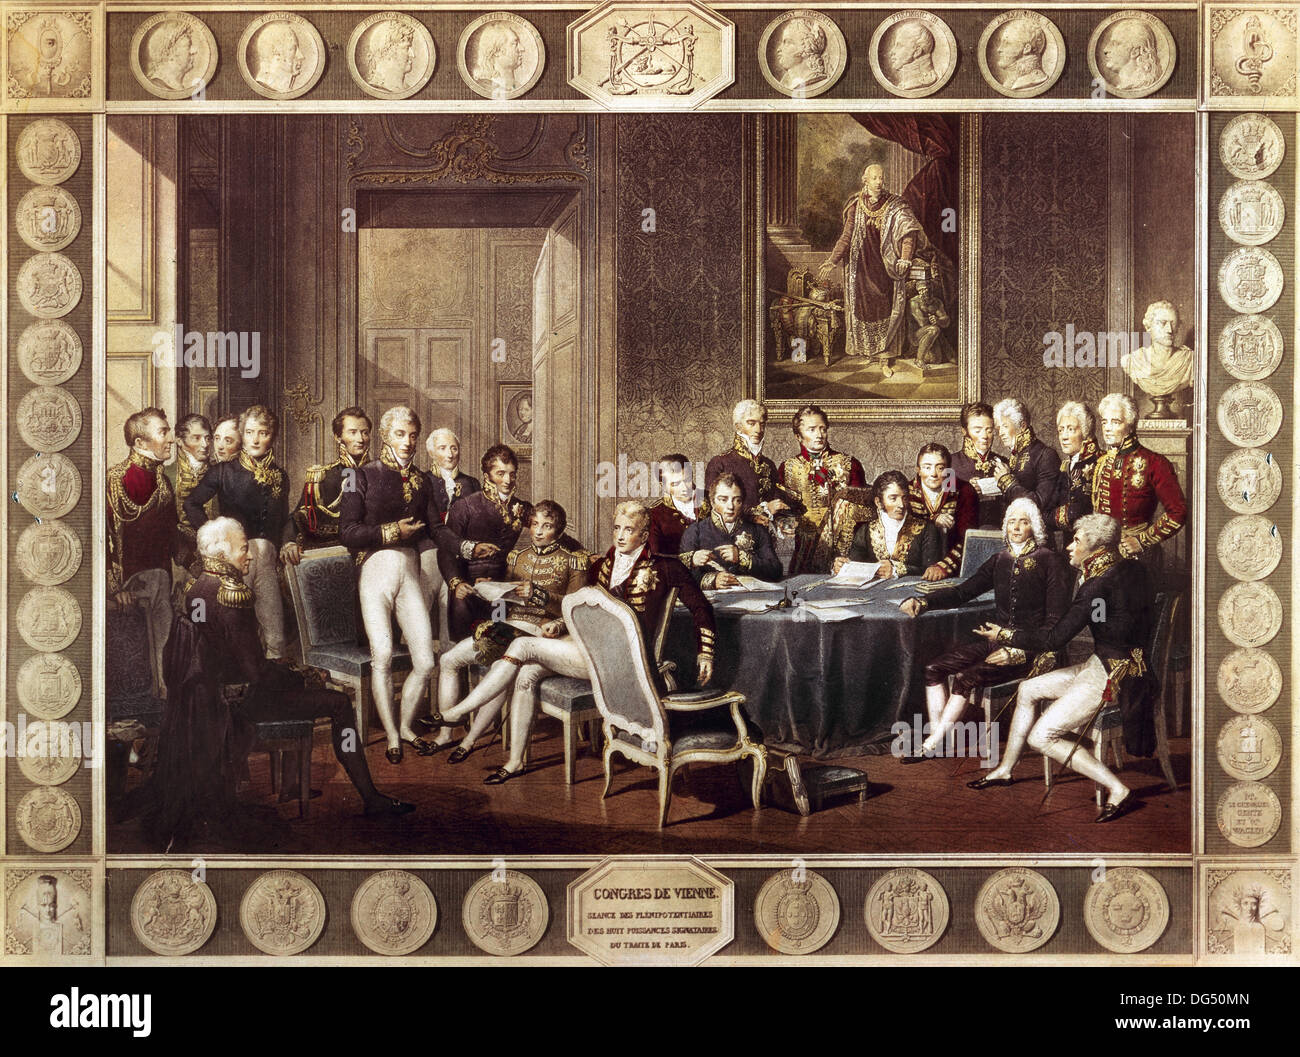 Congress of Vienna chaired by Austrian statesman Metternich. Colored engraving. Stock Photo